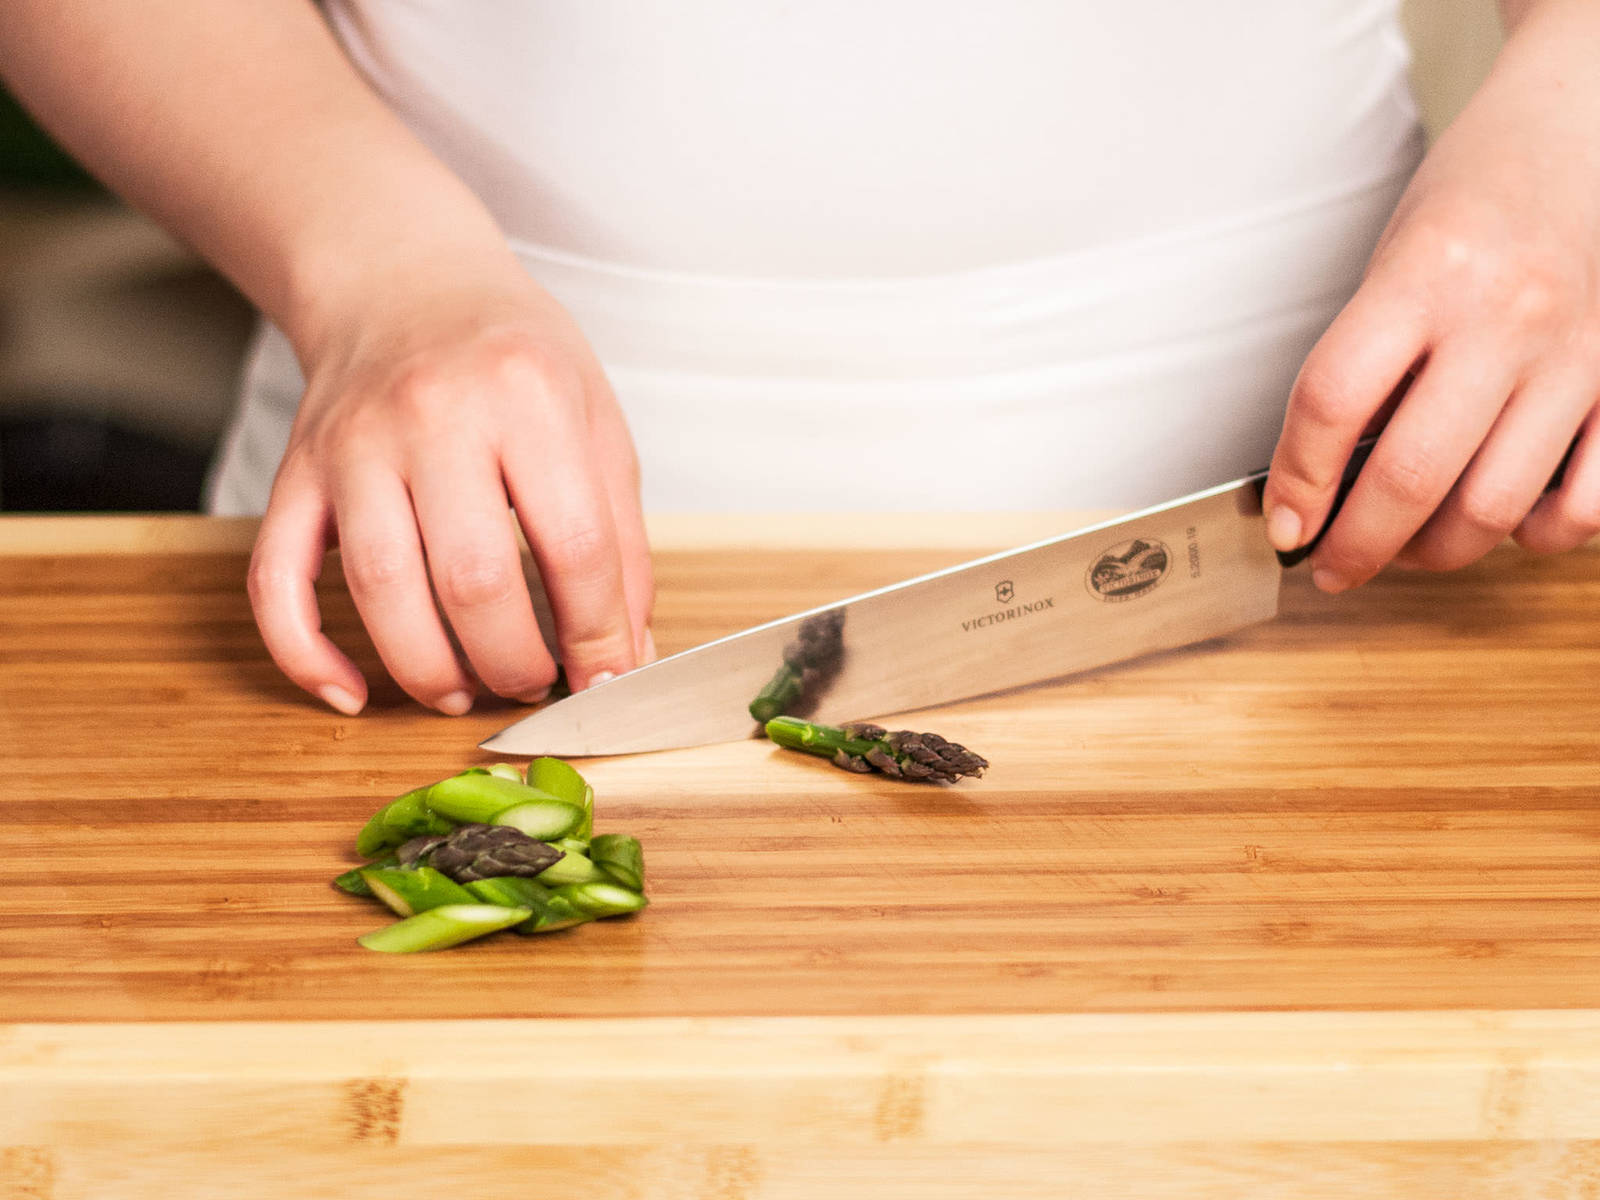 Trim wooden ends of asparagus. Then, cut into bite-sized pieces at a slight angle.